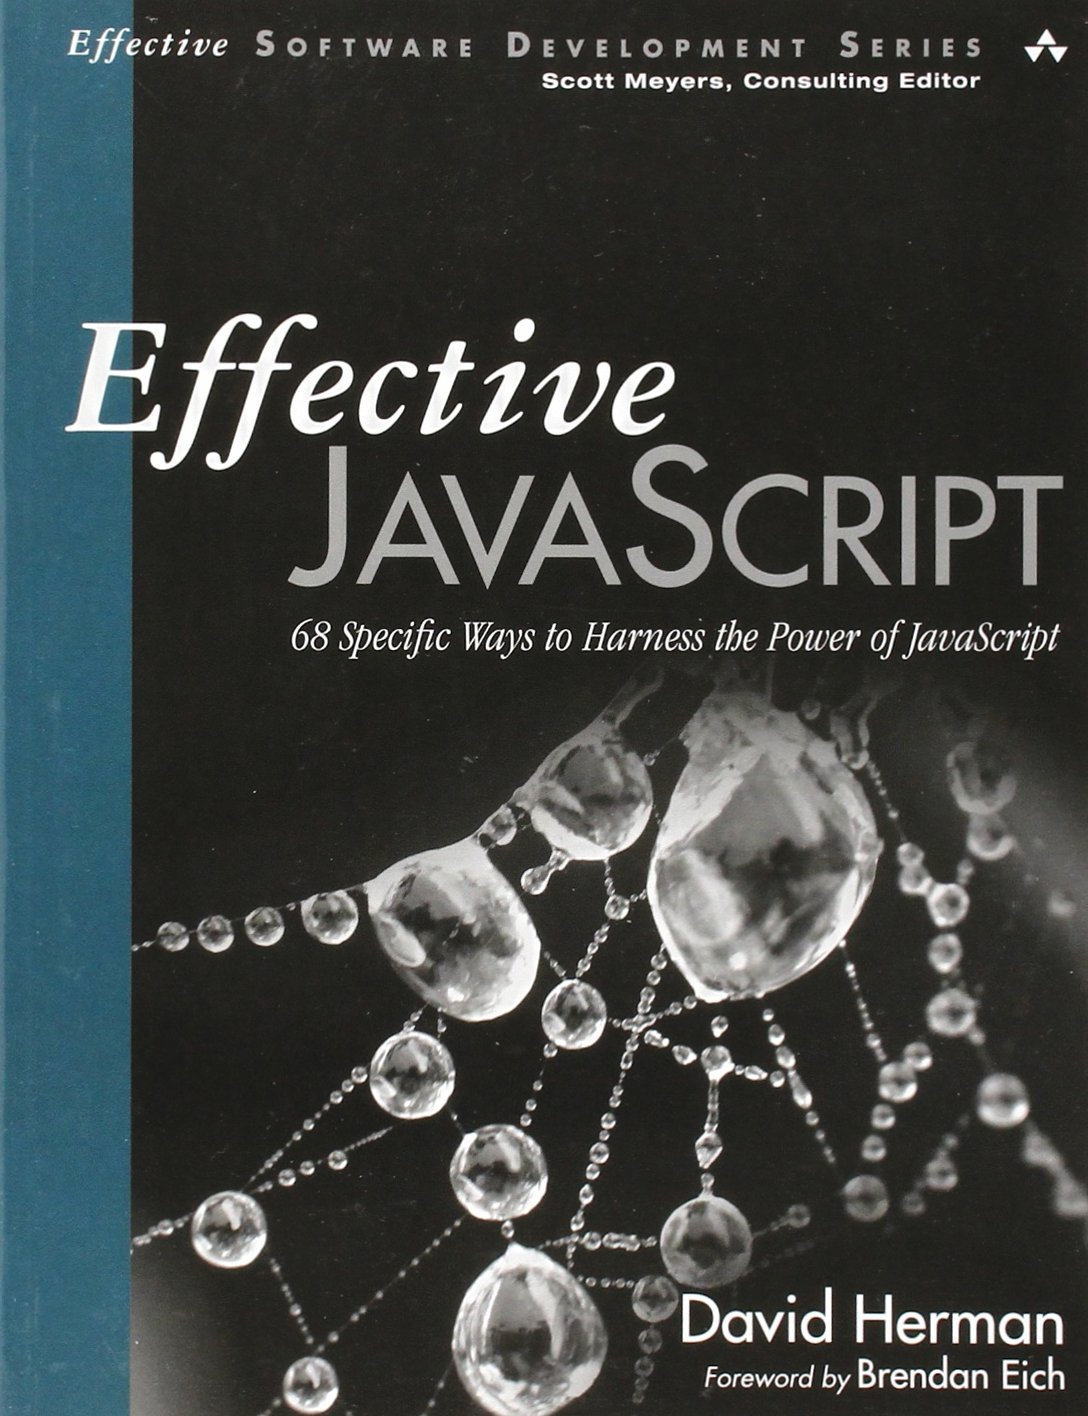 Effective JavaScript: 68 Specific Ways to Harness the Power of JavaScript (Effective Software Development) by David Herman (26-Nov-2012) Paperback